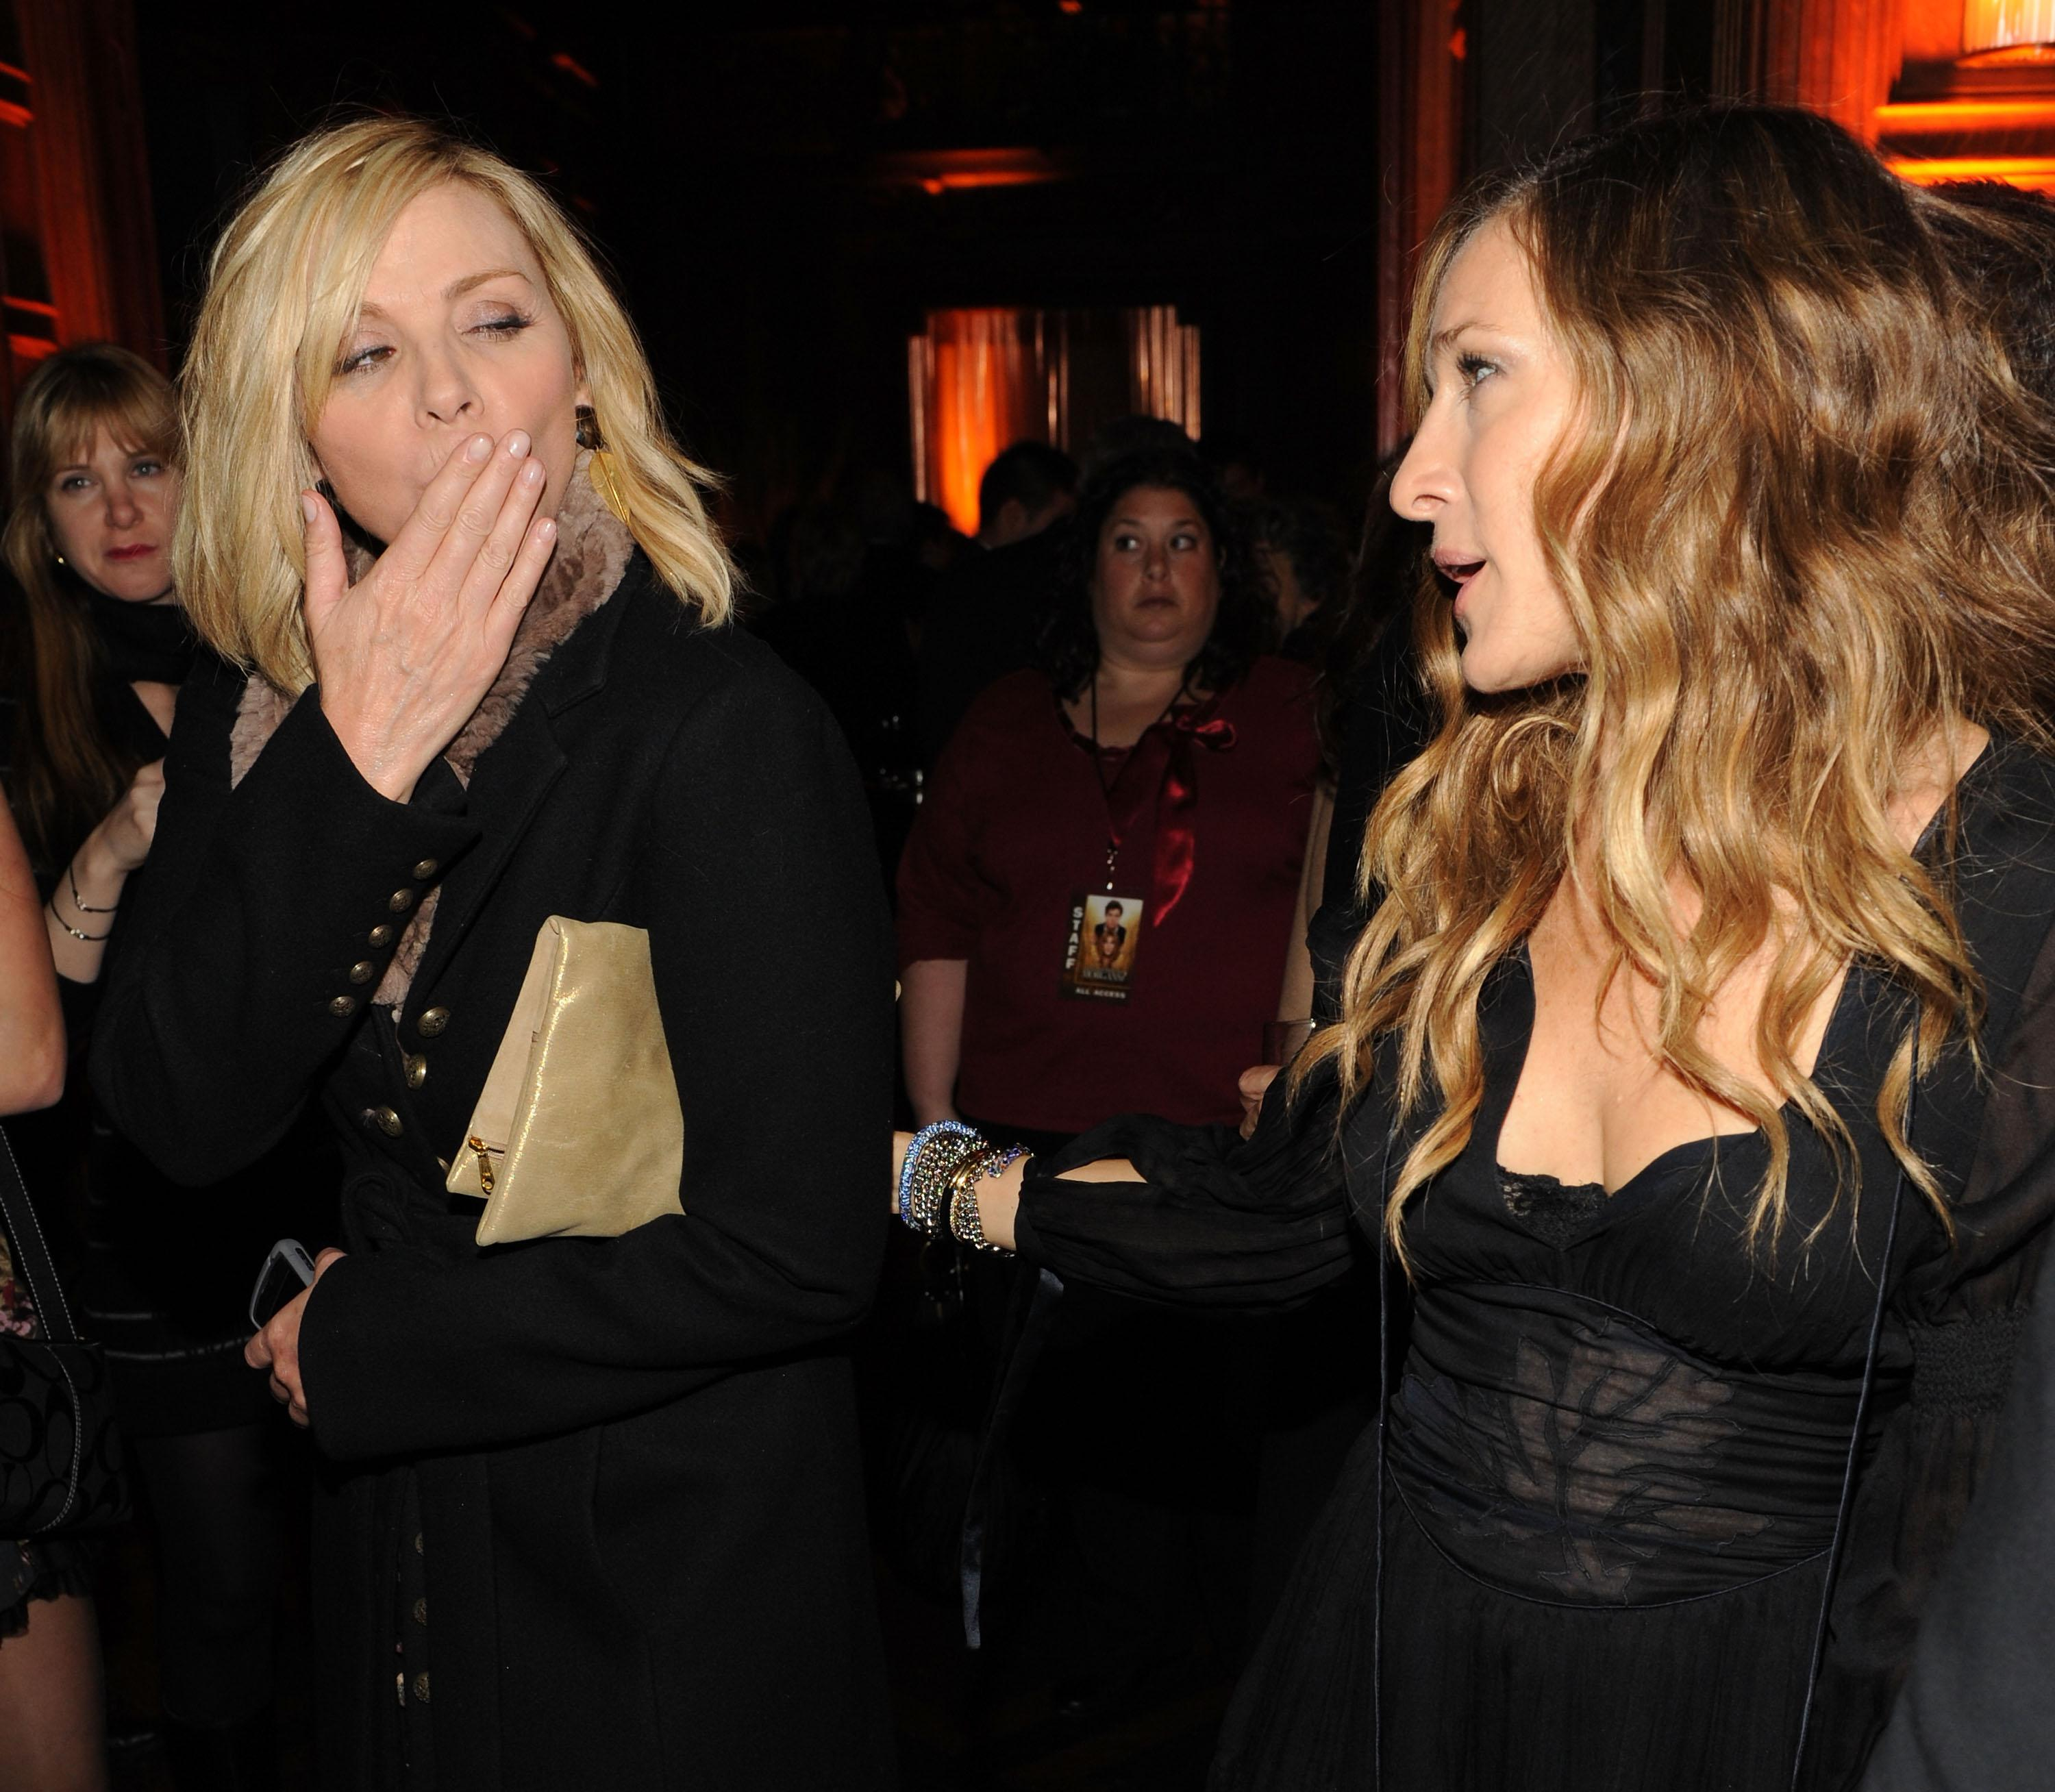 Sarah Jessica Parker Says There Is No Feud With Kim Cattrall